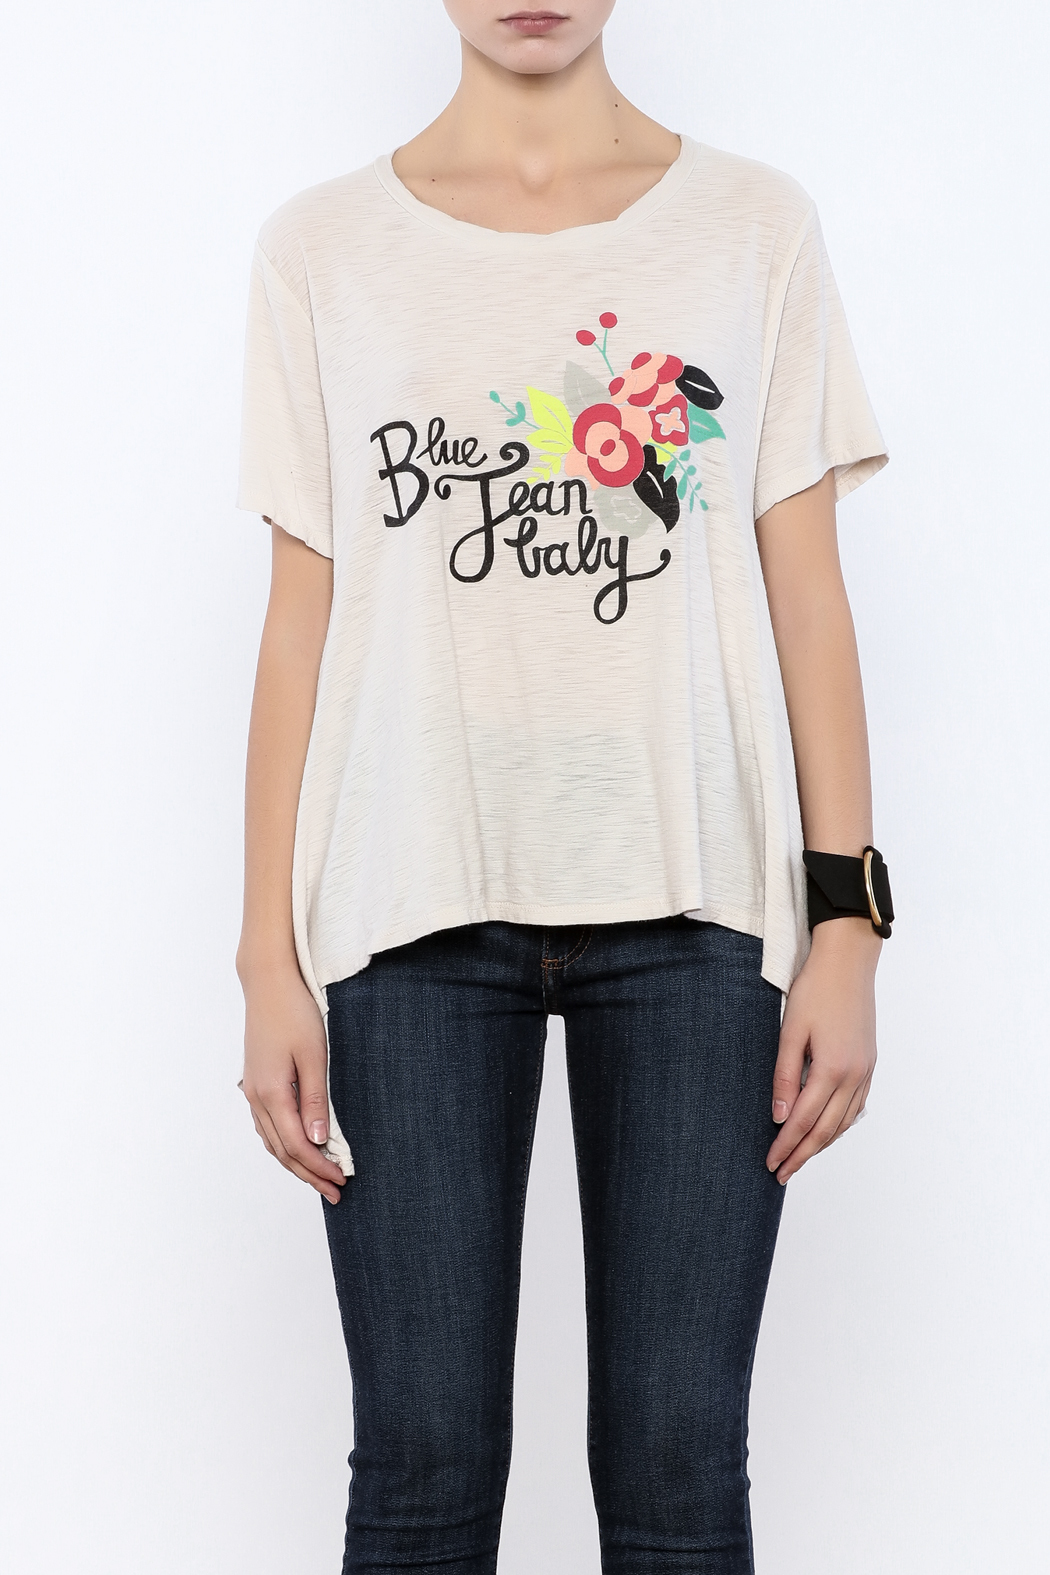 Judith March Blue Jean Baby Tee - Side Cropped Image